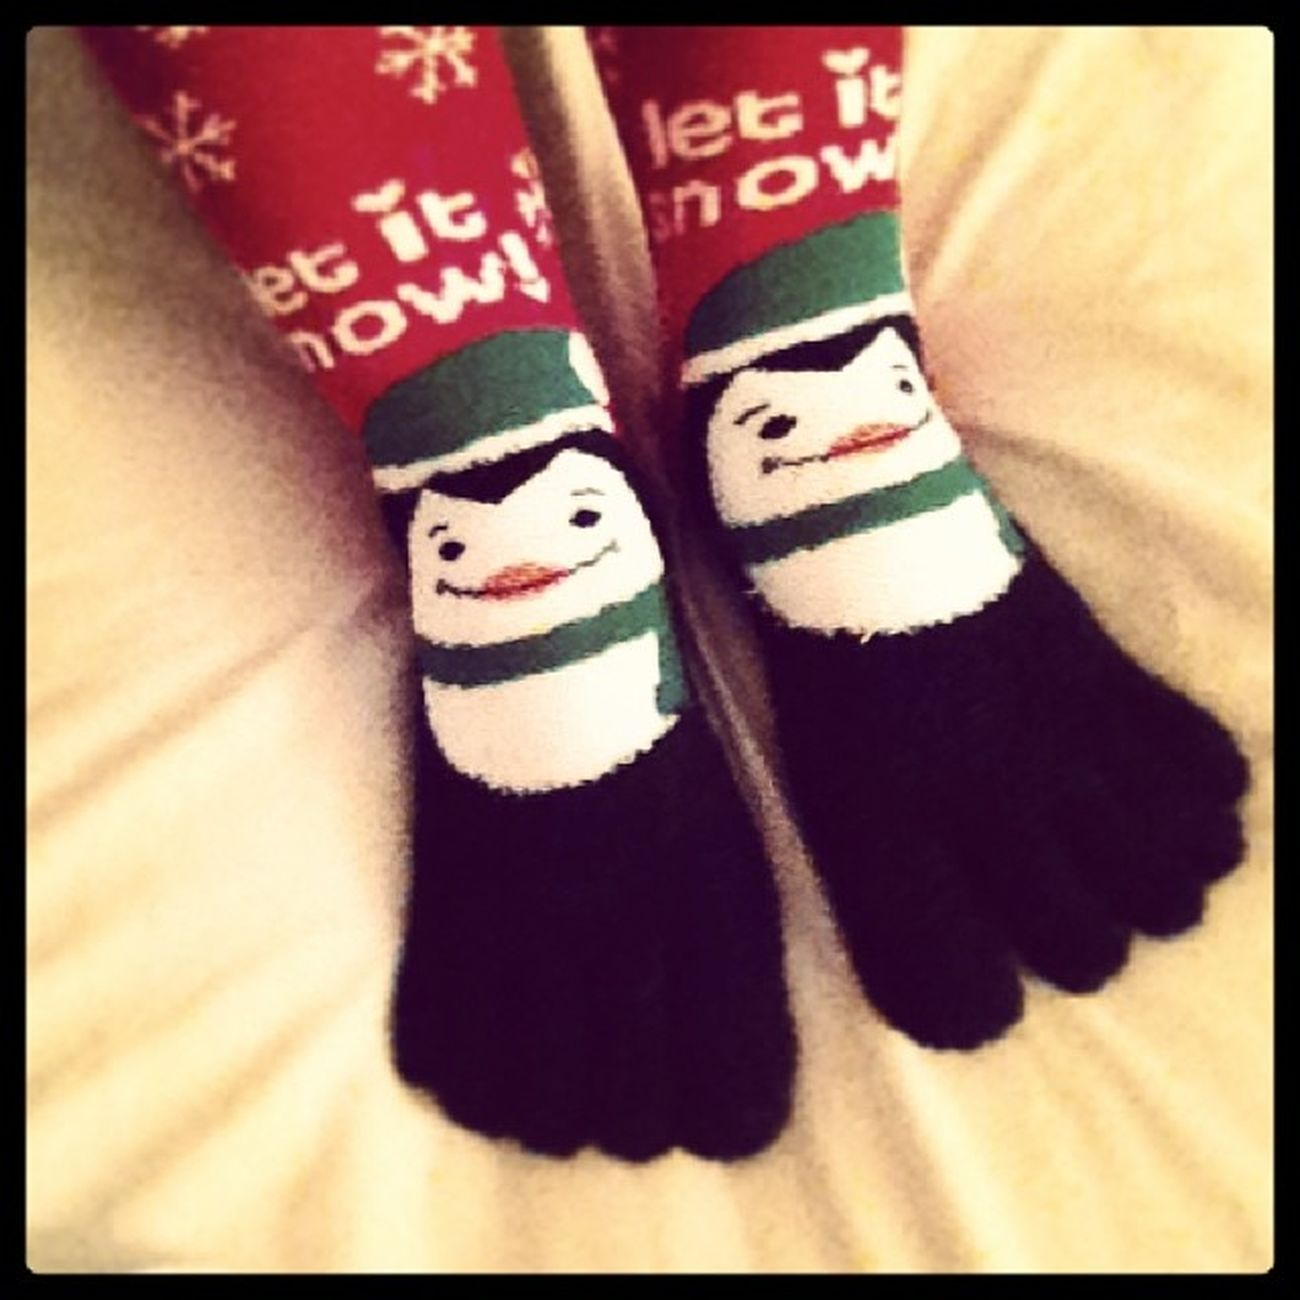 Toesocks Penguins Letitsnow Red green readyforcoldweather festive novembernights relaxed sundaynight